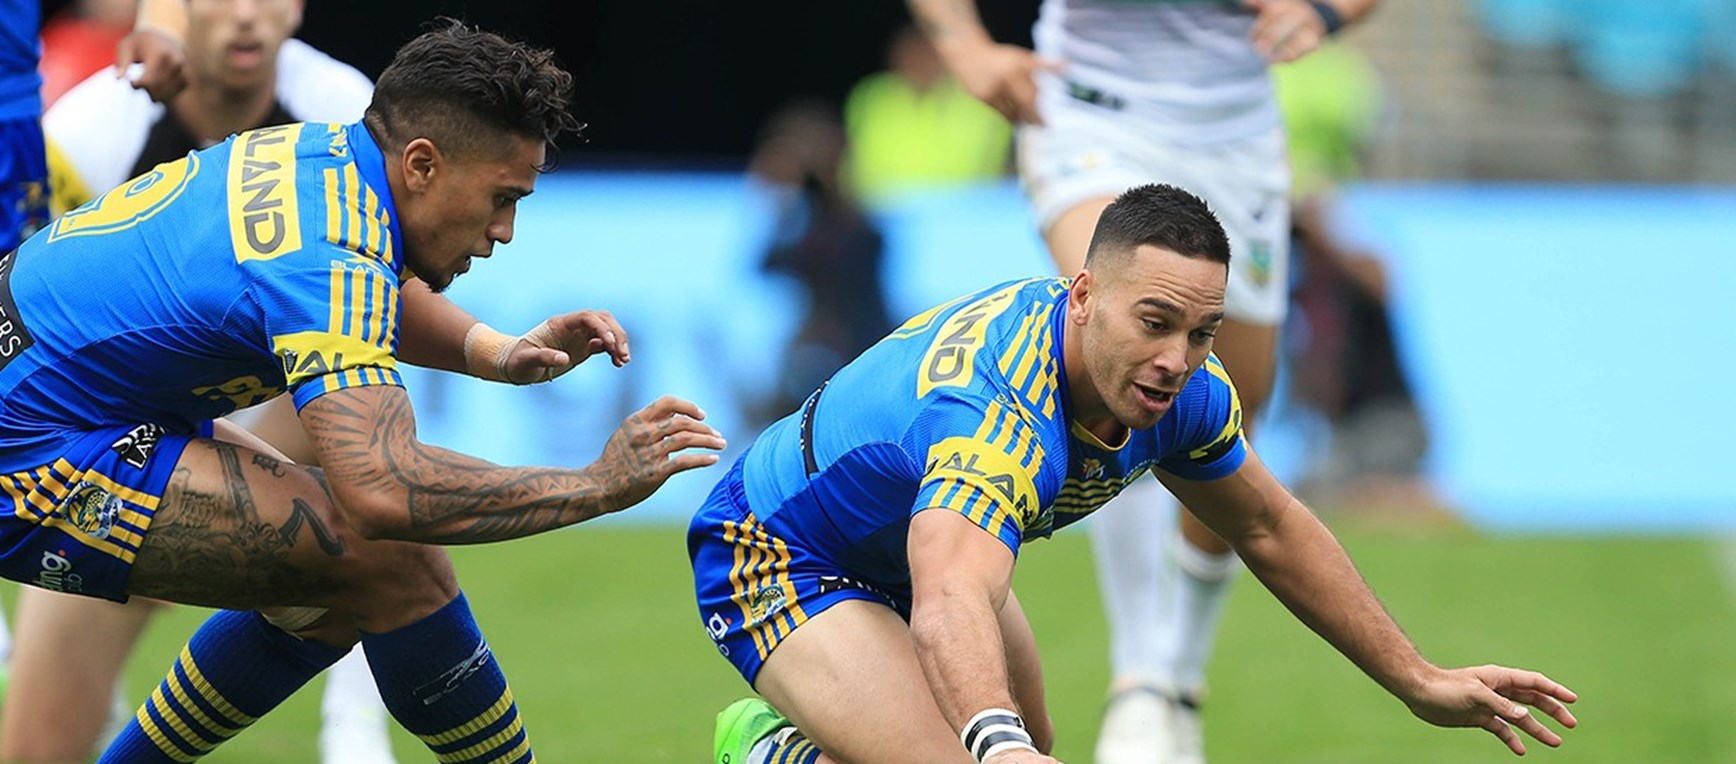 GALLERY | Eels v Penrith Panthers, ANZ Stadium